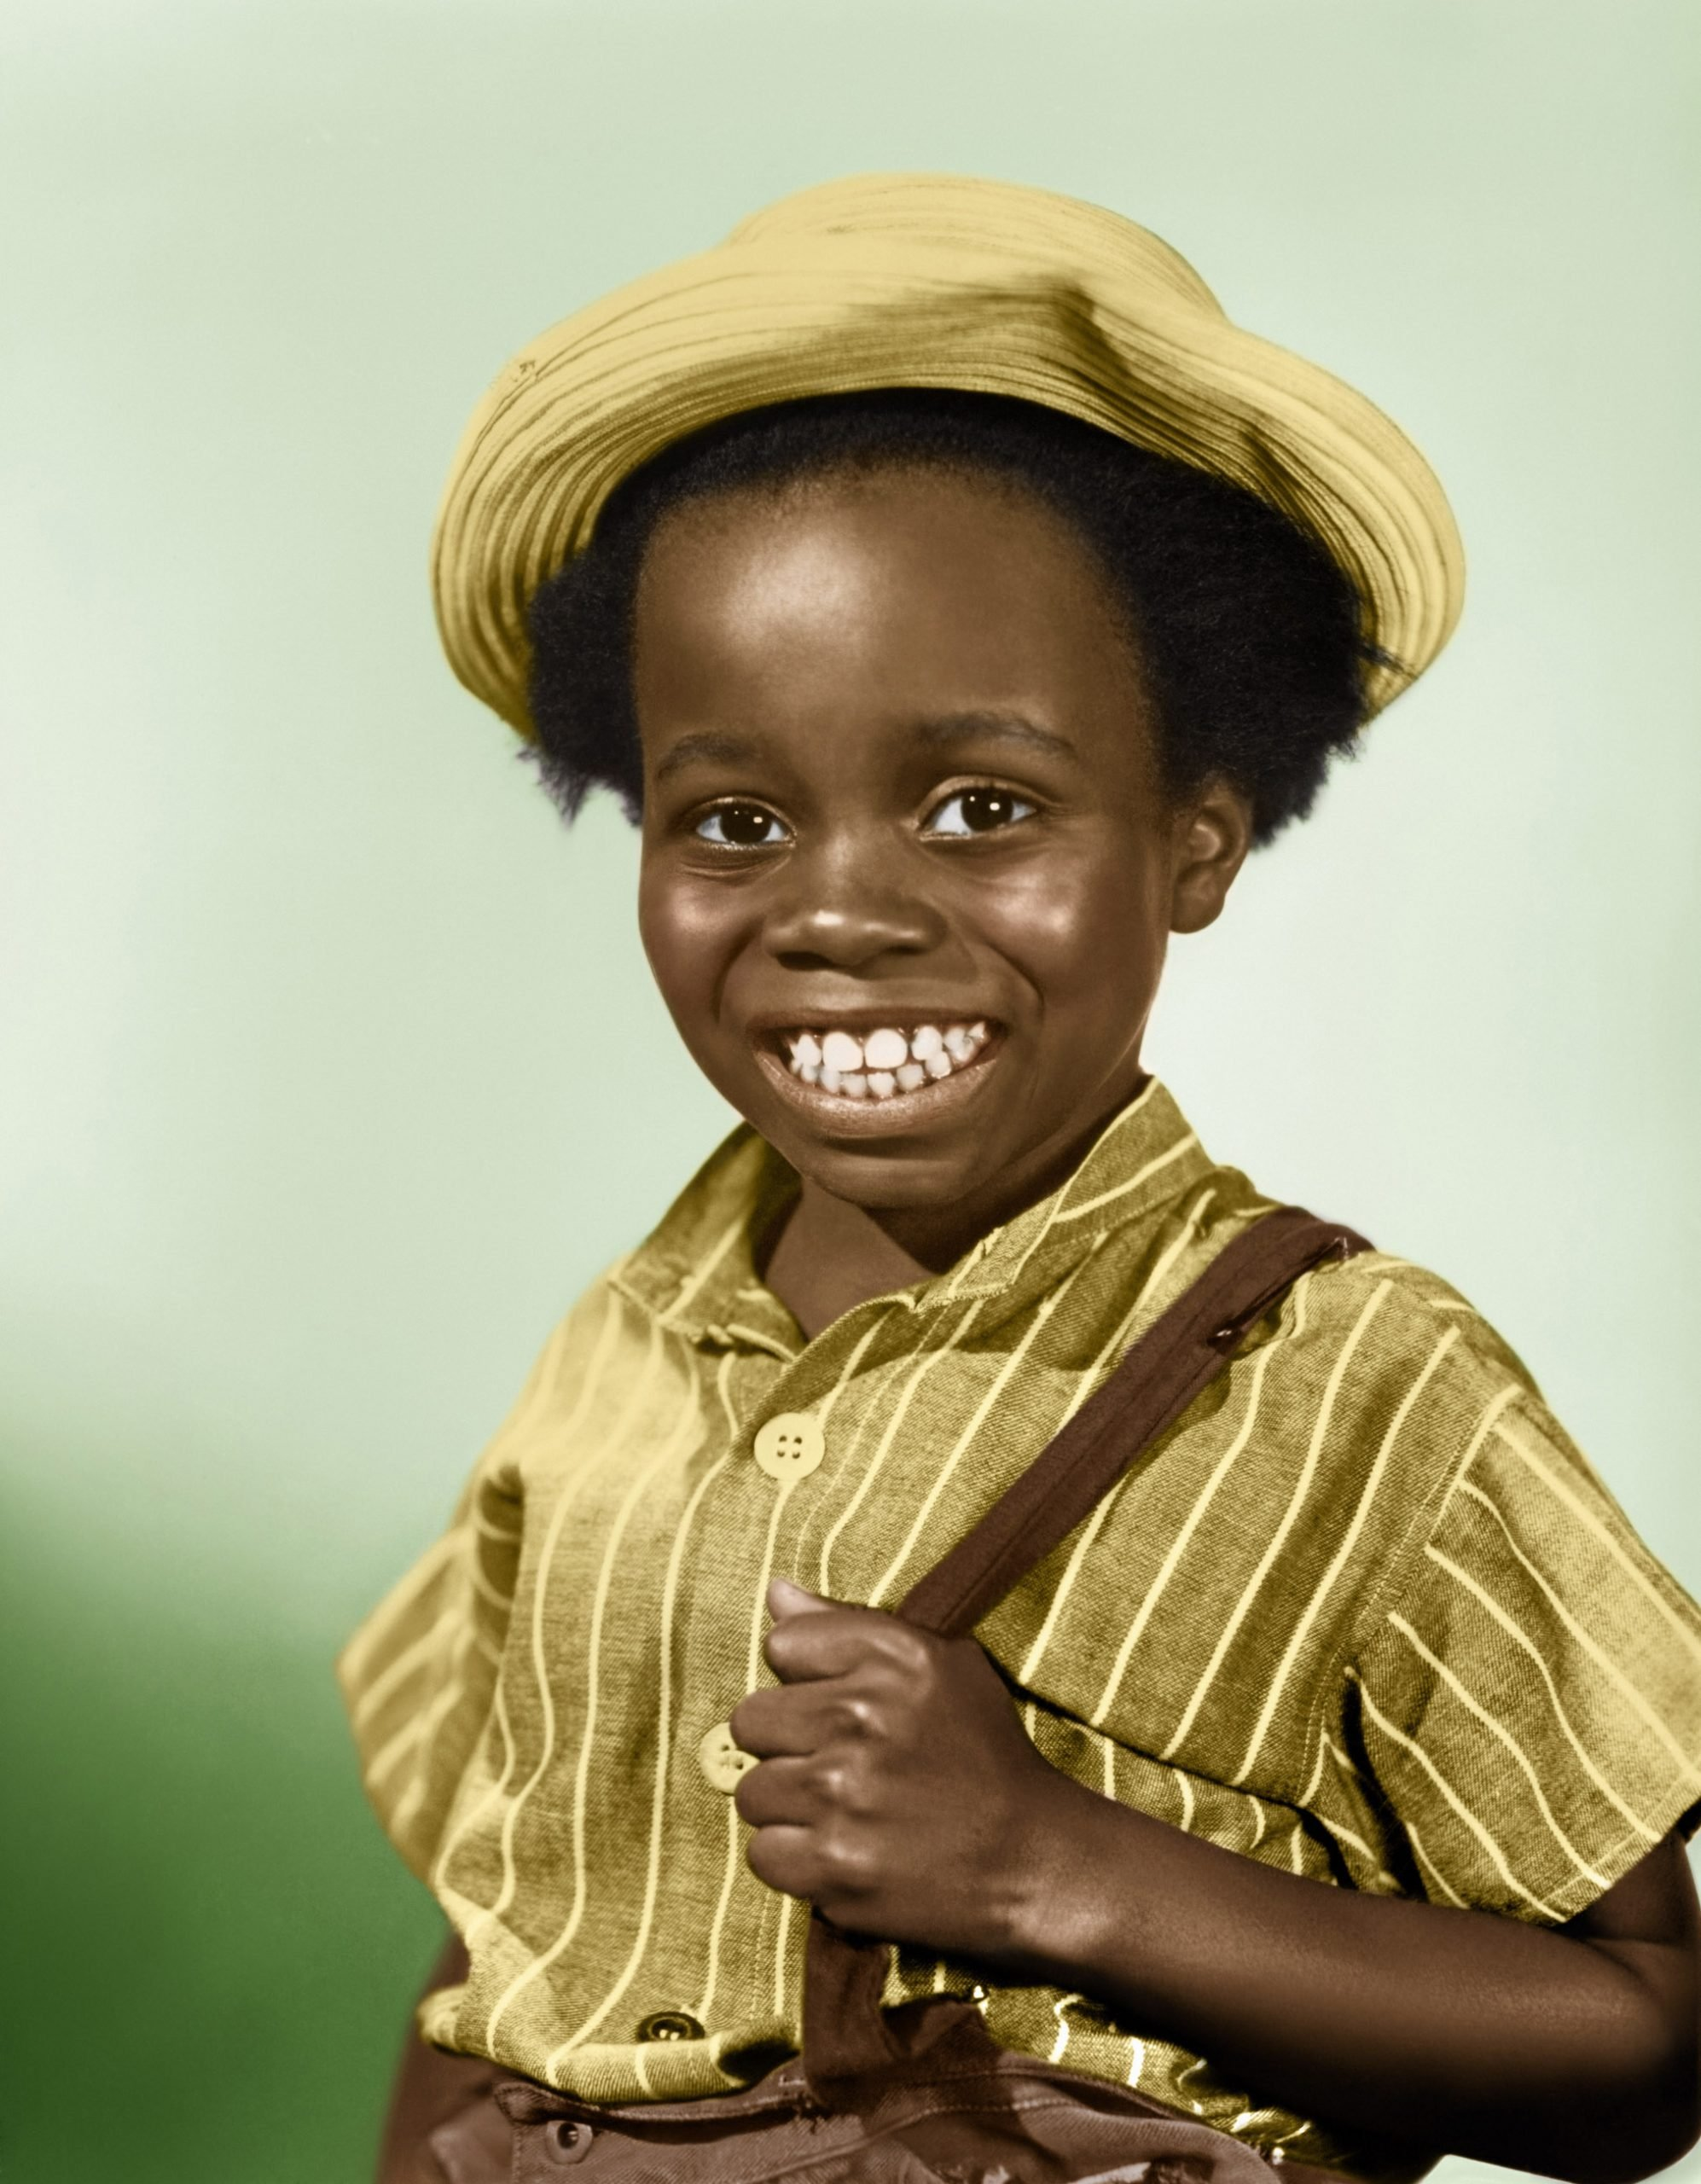 the-little-rascals-buckwheat-in-color